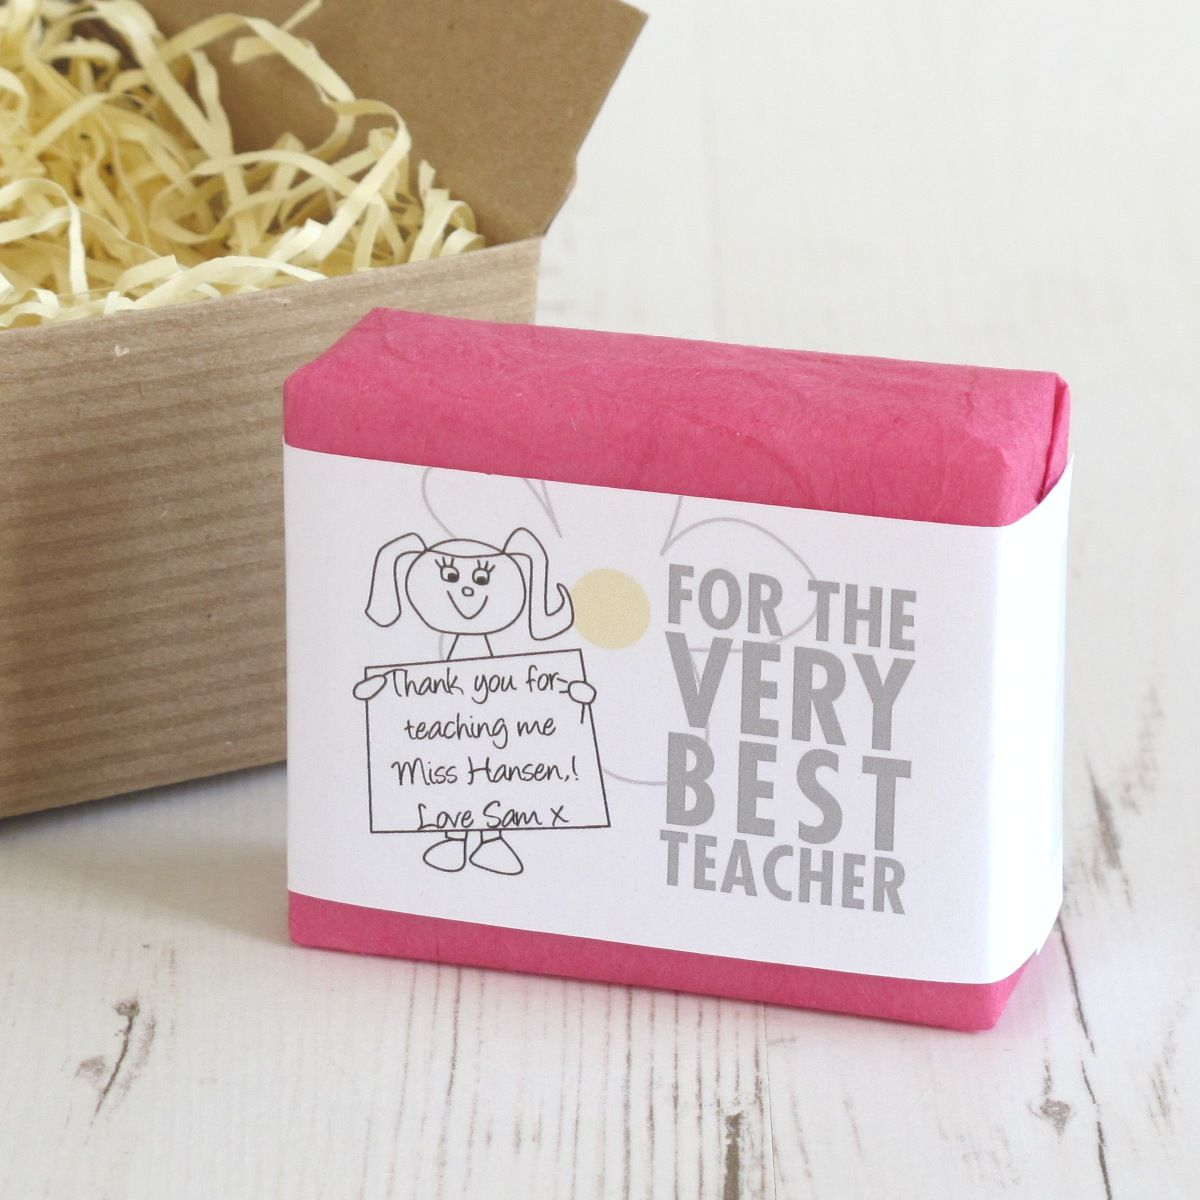 teacher thank you gift ideas personalised soap and bath gift sets